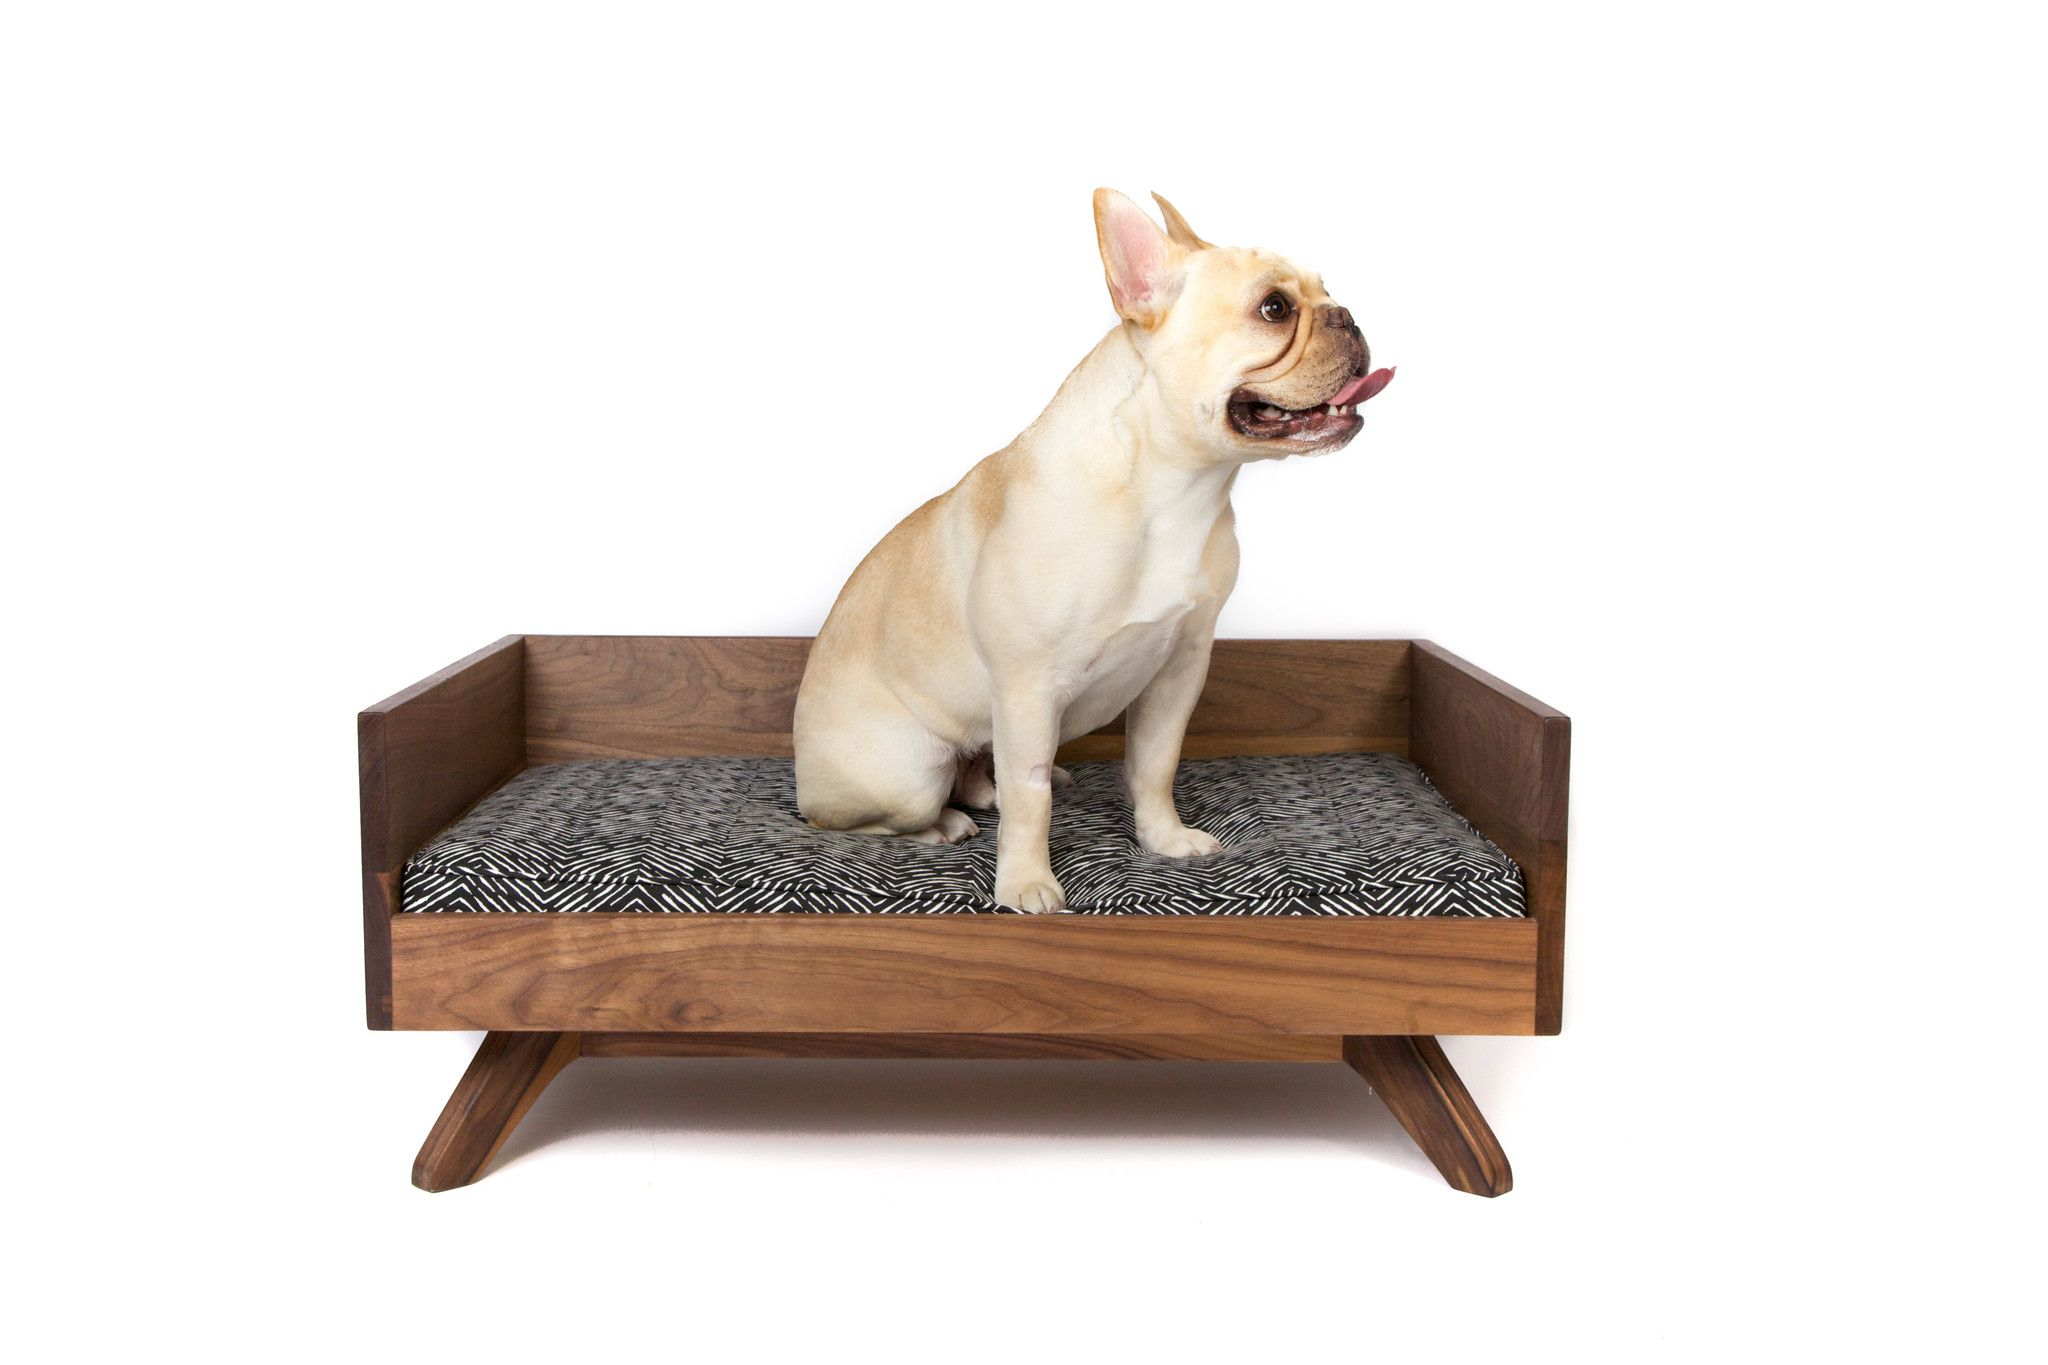 The Joey High Back Bed Is One Of Pup Kit S Most Por Pet Beds Made To Order Out Solid Wood In Toronto Ontario This Mid Century Modern Wi